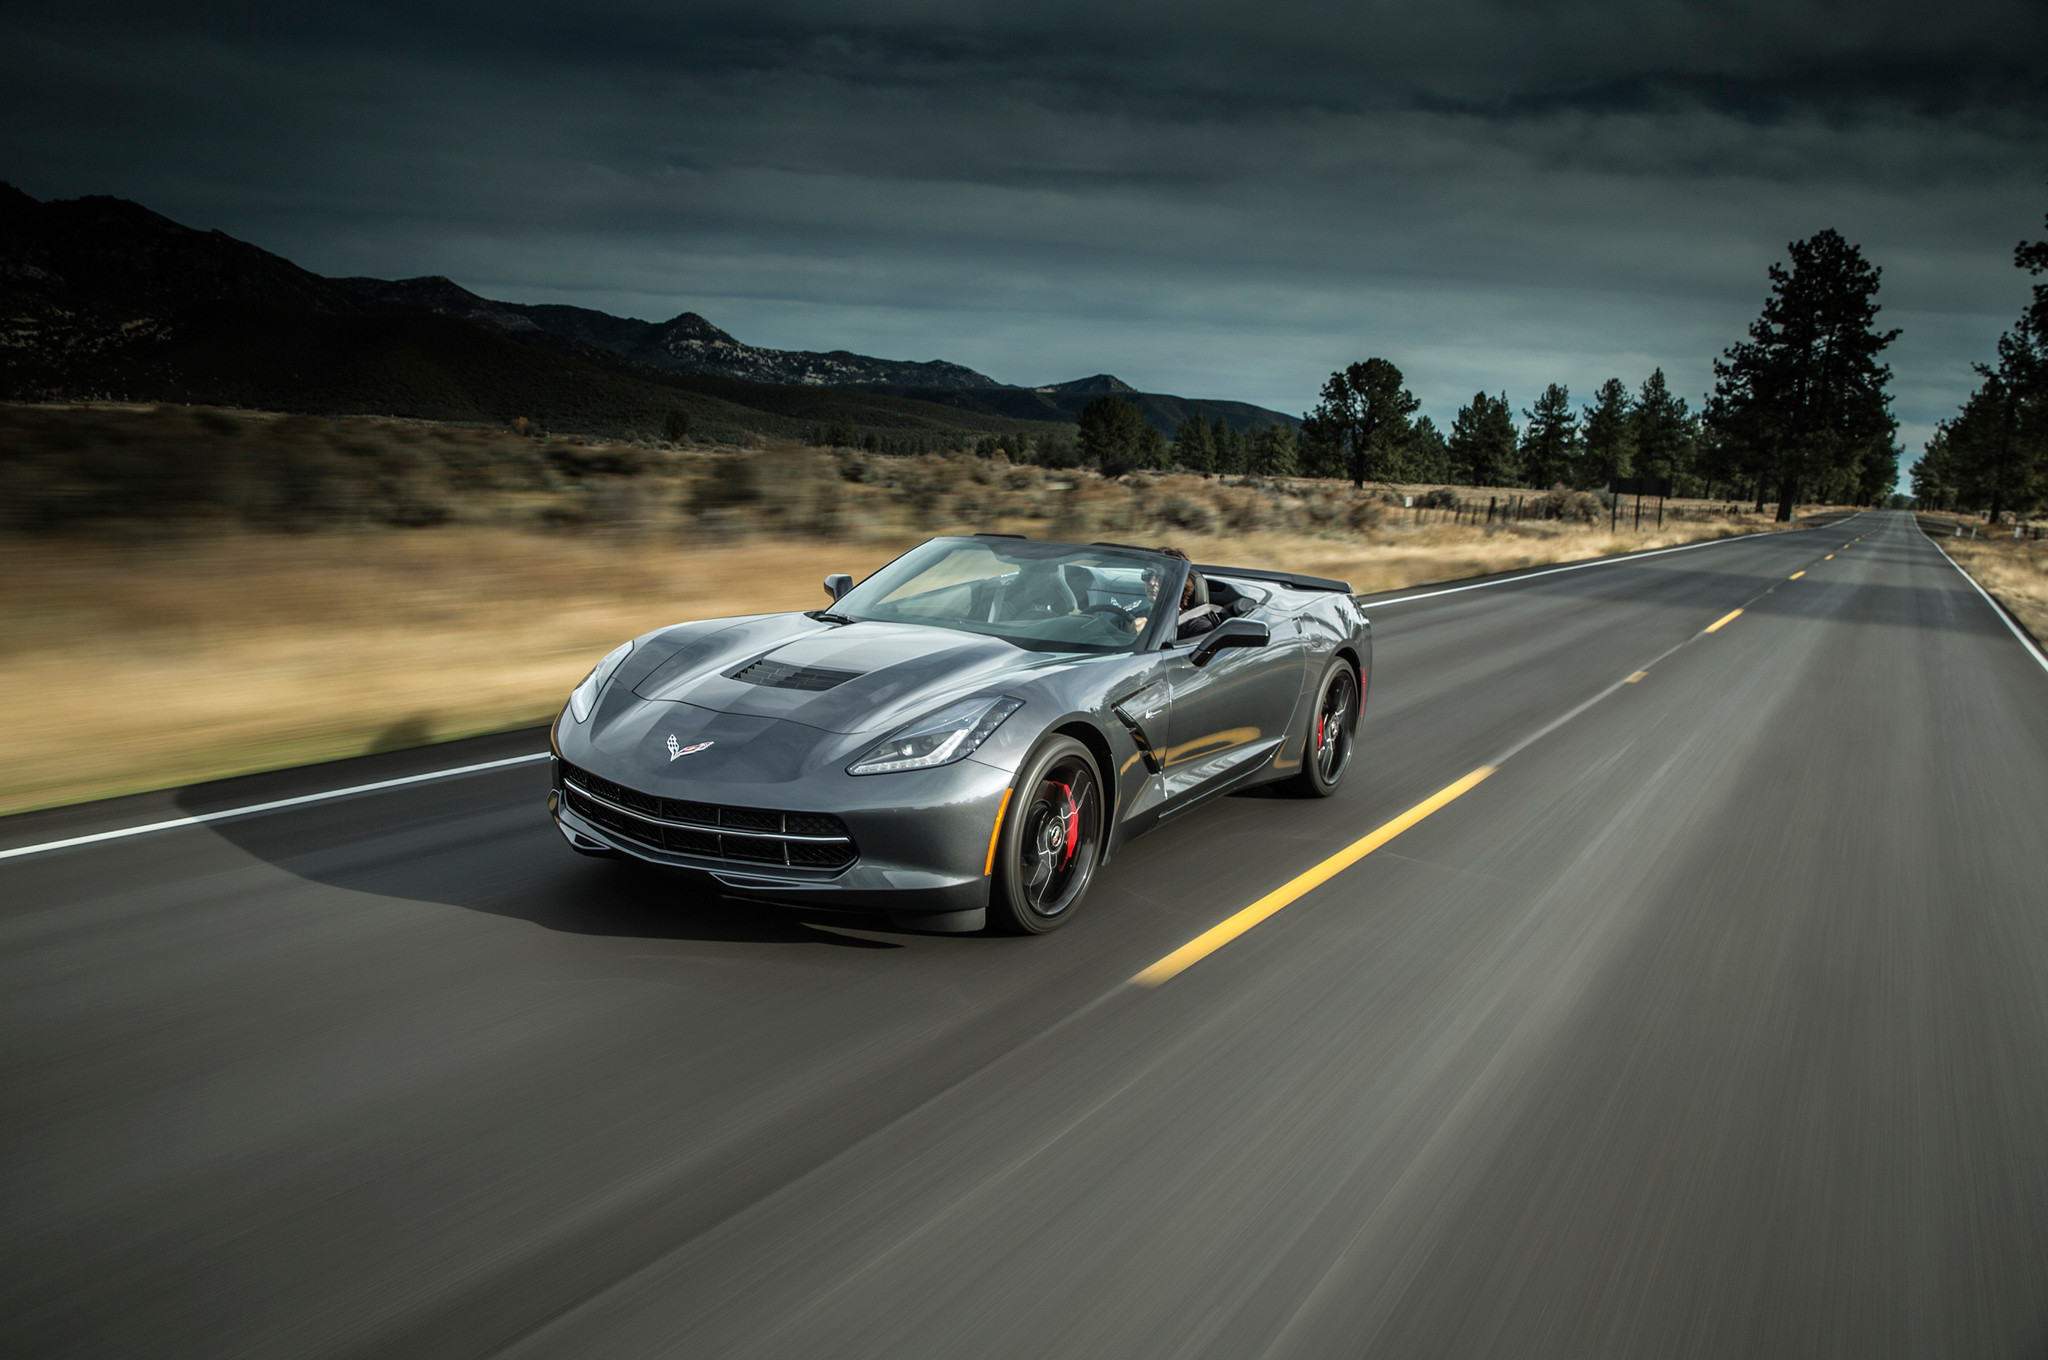 2048x1360 ... 2014 Chevrolet Corvette C7 Stingray Convertible 13 462 ...